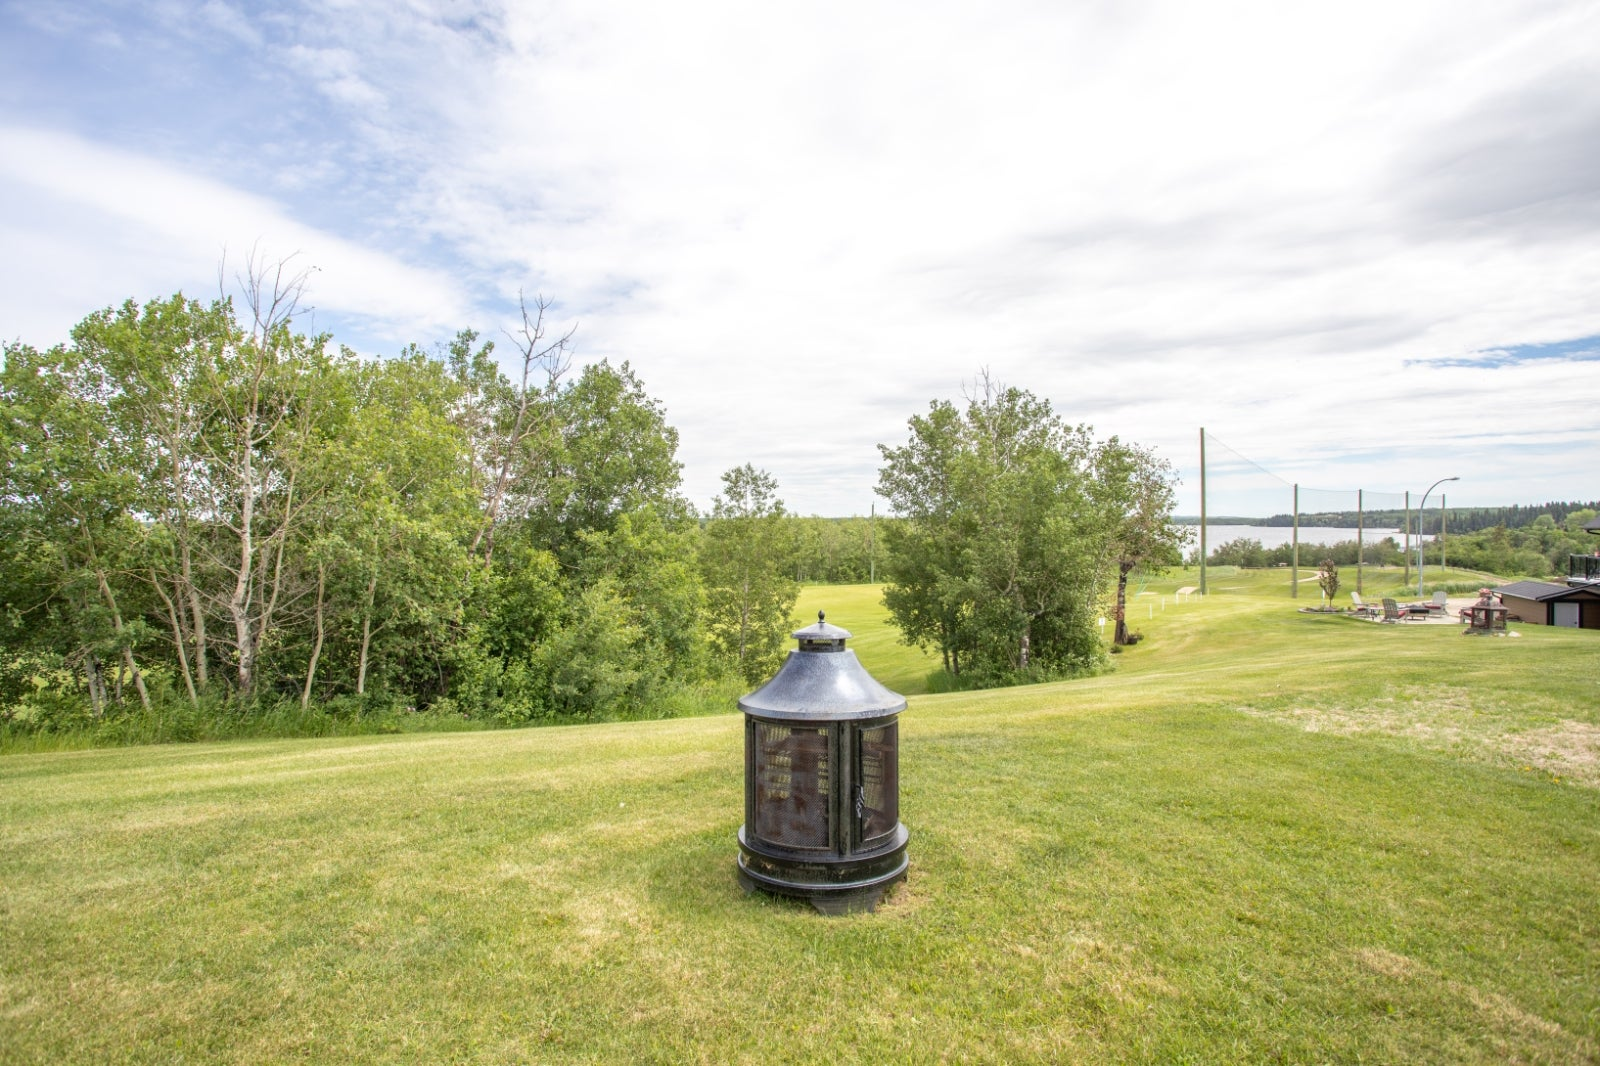 6084, 25054 SOUTH PINE LAKE Road - Whispering Pines Residential Land for sale(A1100818) #5